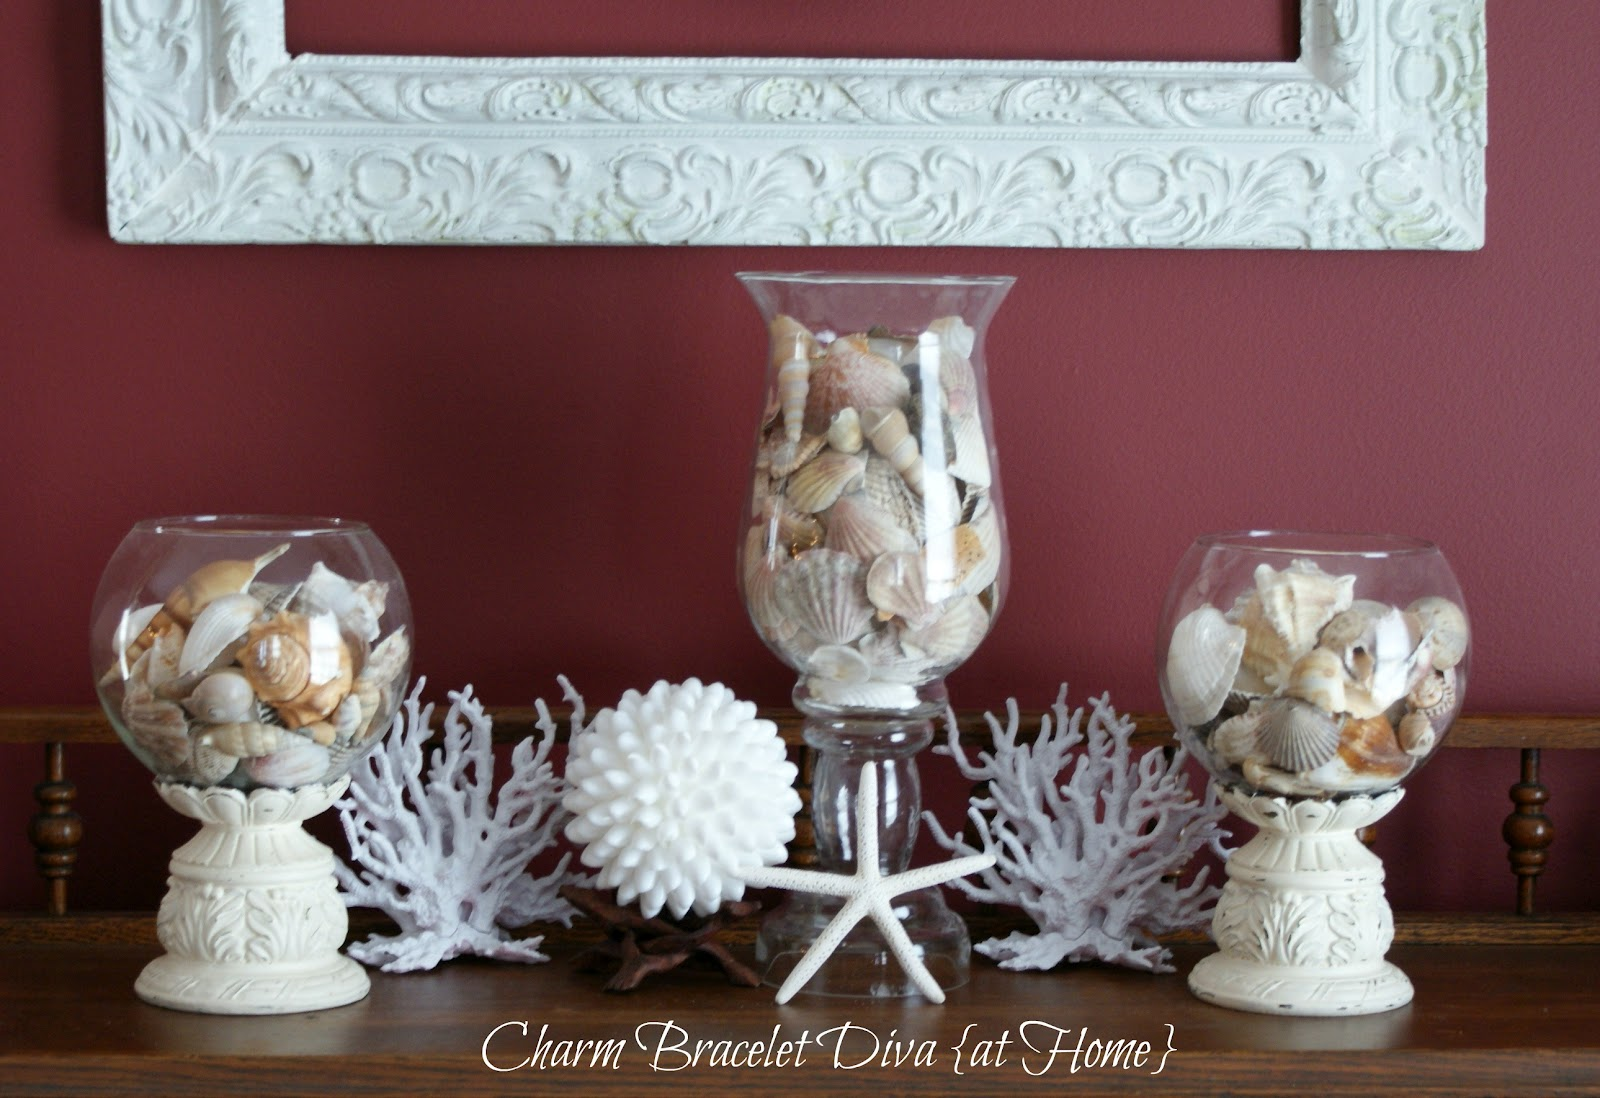 Our hopeful home more beach decor diy pottery barn faux for Coral decorations for home